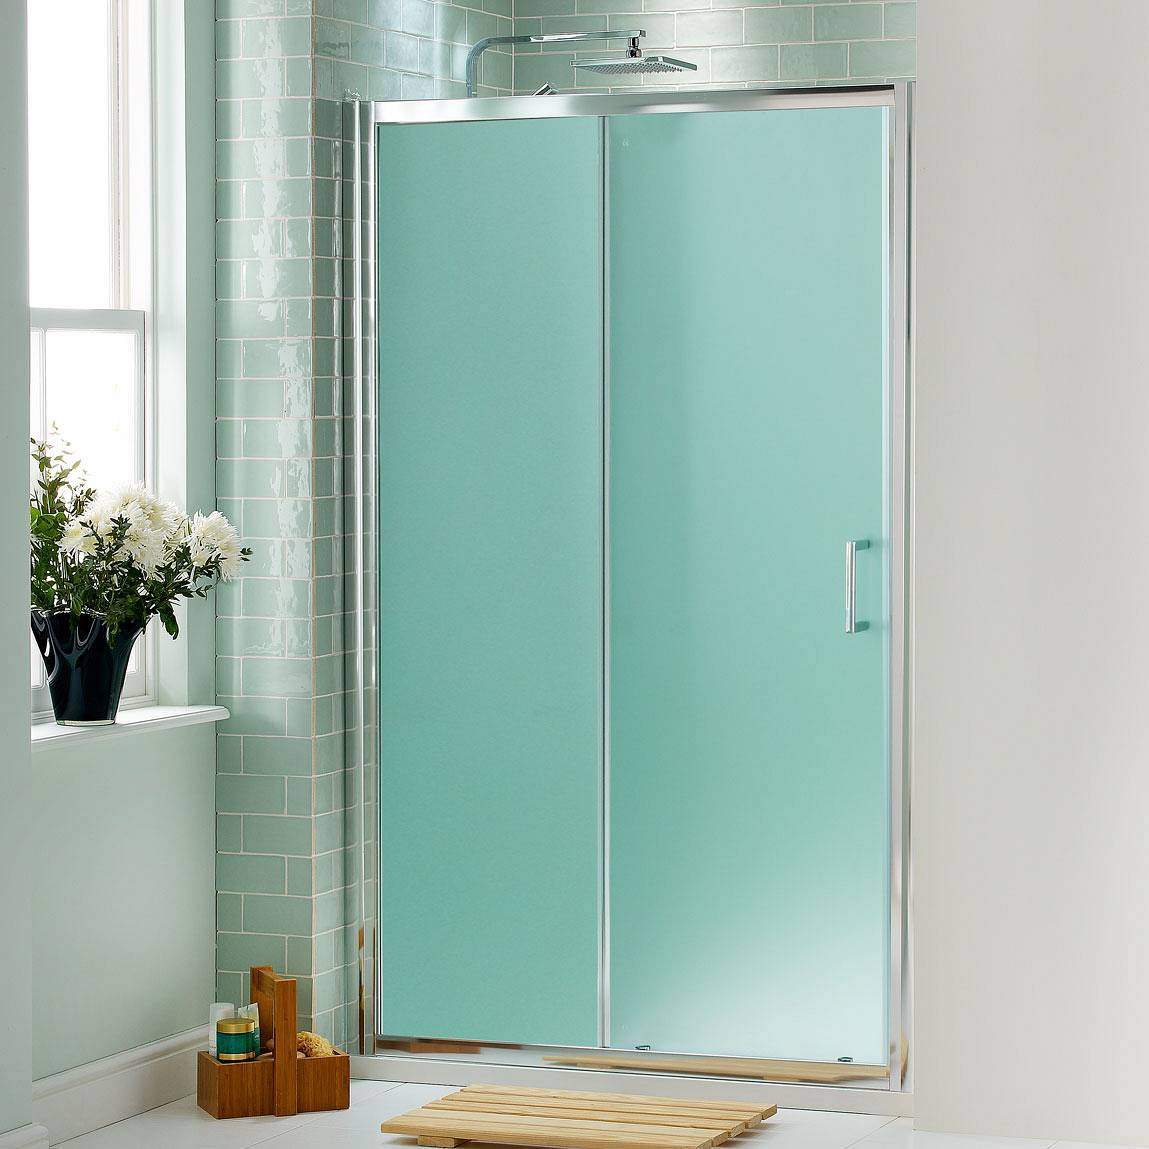 21 creative glass shower doors designs for bathrooms digsdigs Glass bathroom doors interior